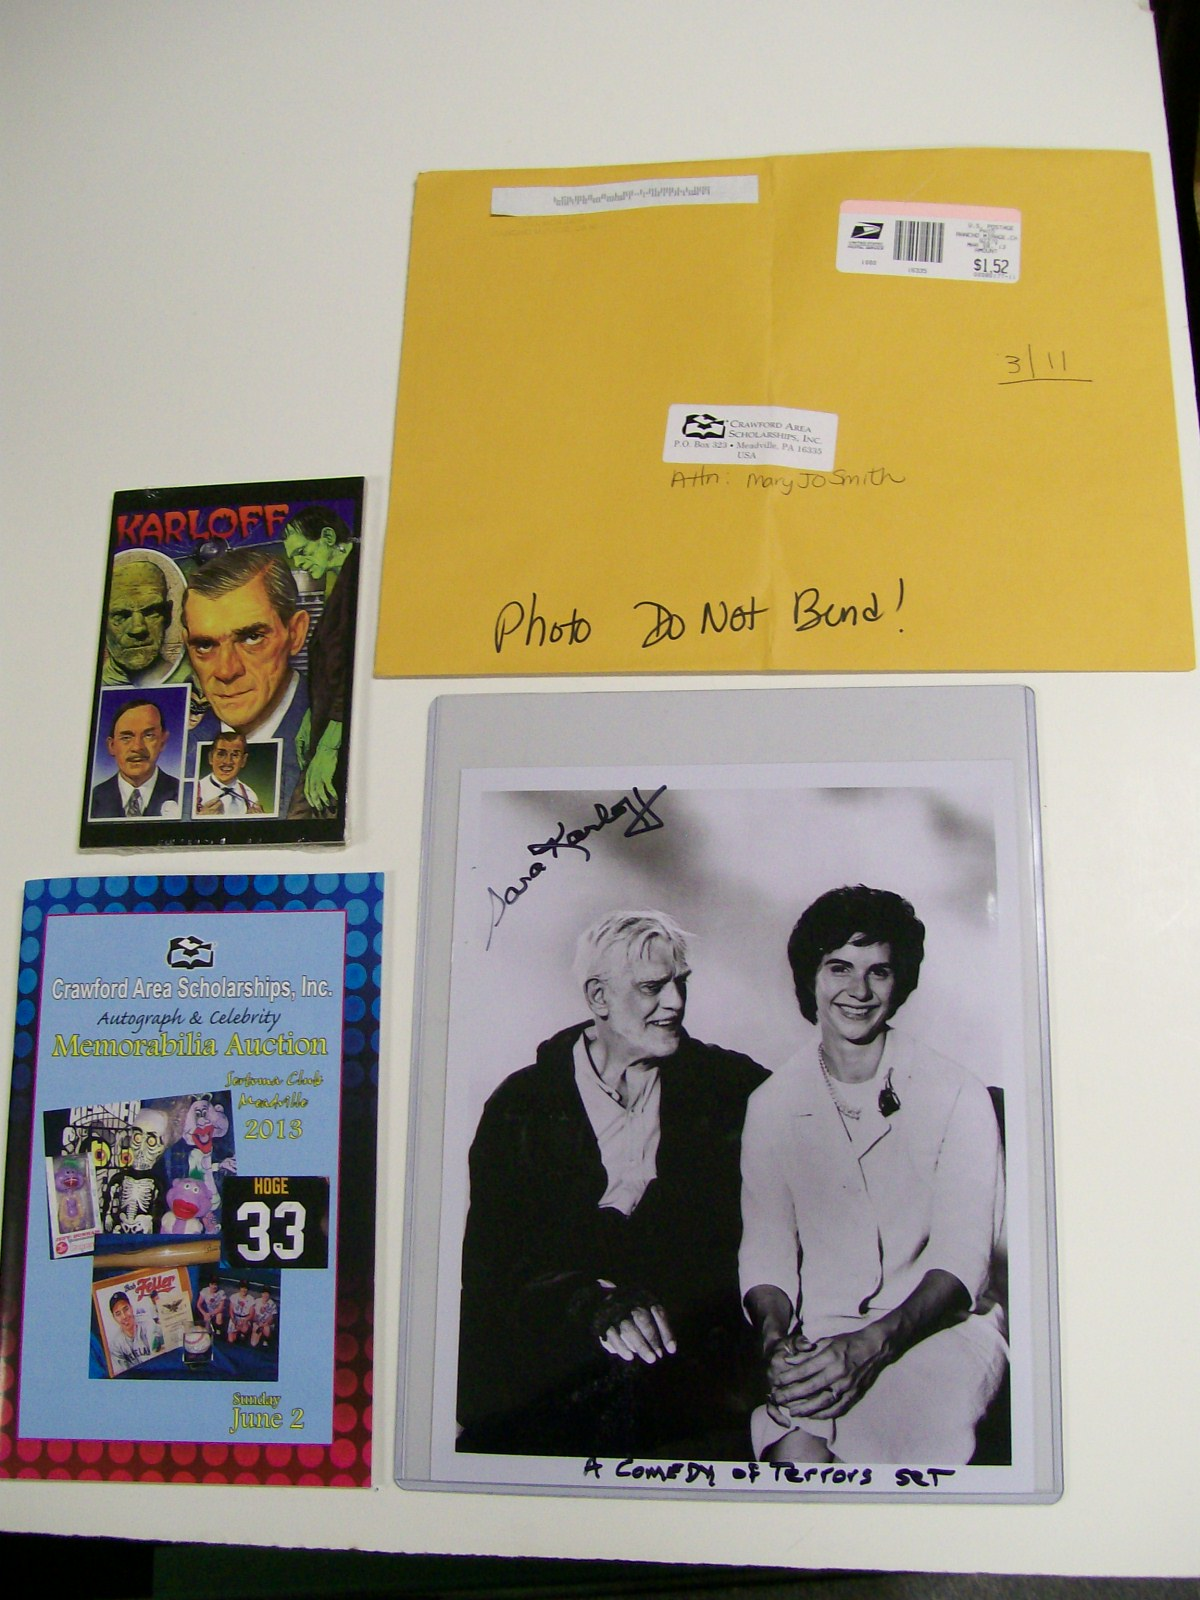 Sara & Boris Karloff Signed Photo of Her & Father/ Postcards